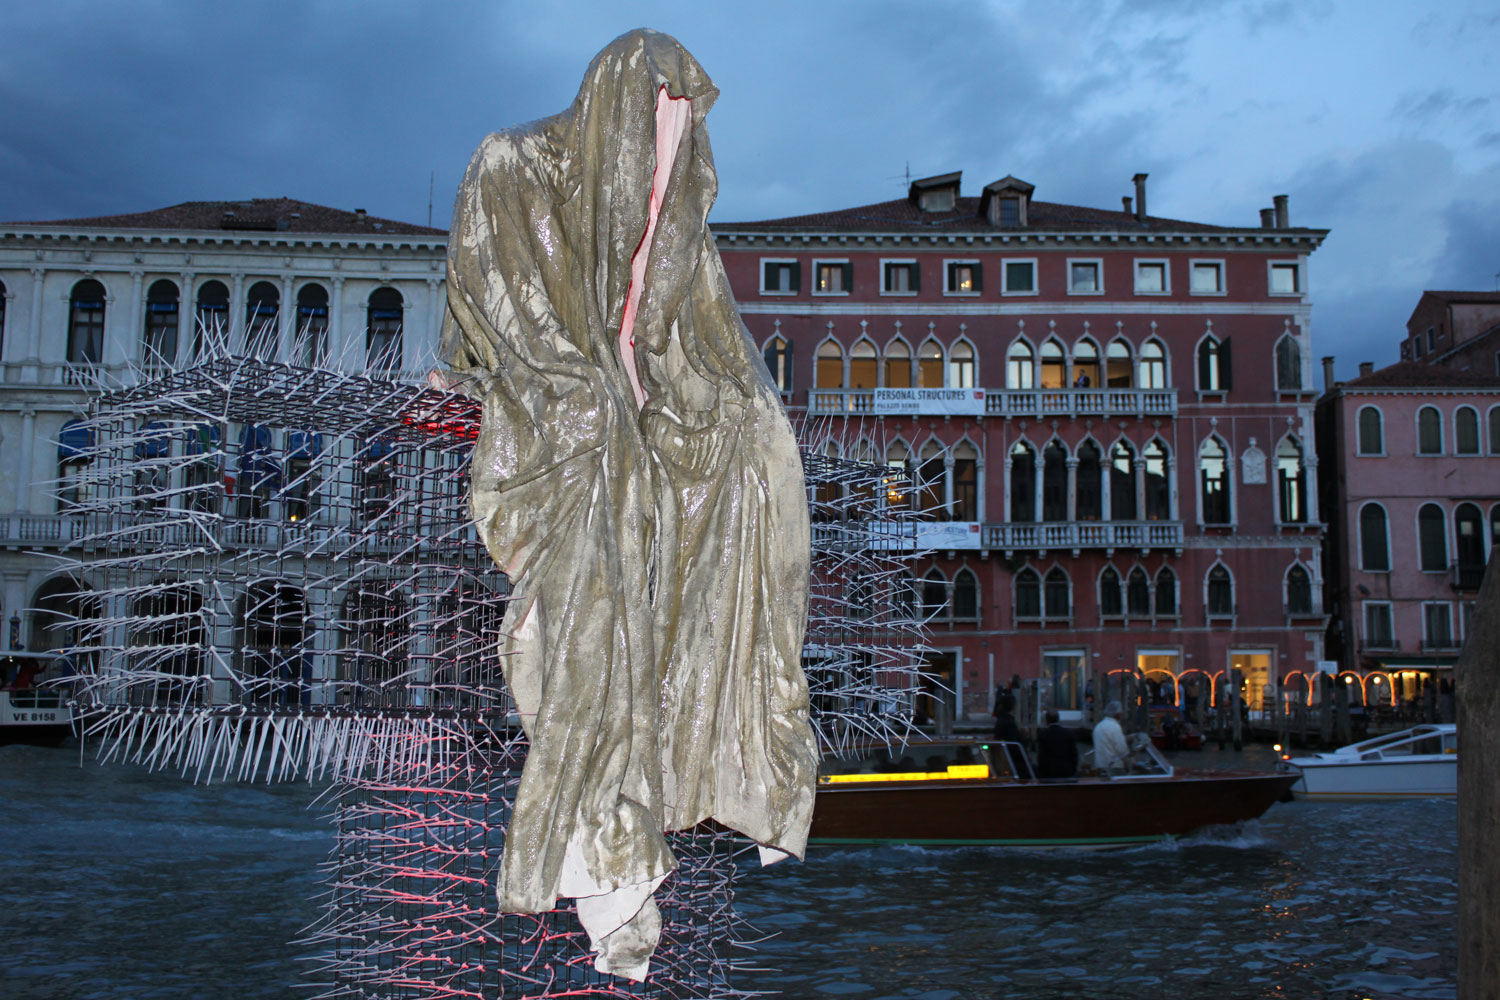 public-biennale-de-arte-venezia-italy-christoph-luckeneder-manfred-kielnhofer-t-guardians-sculpture-art-arts-2011